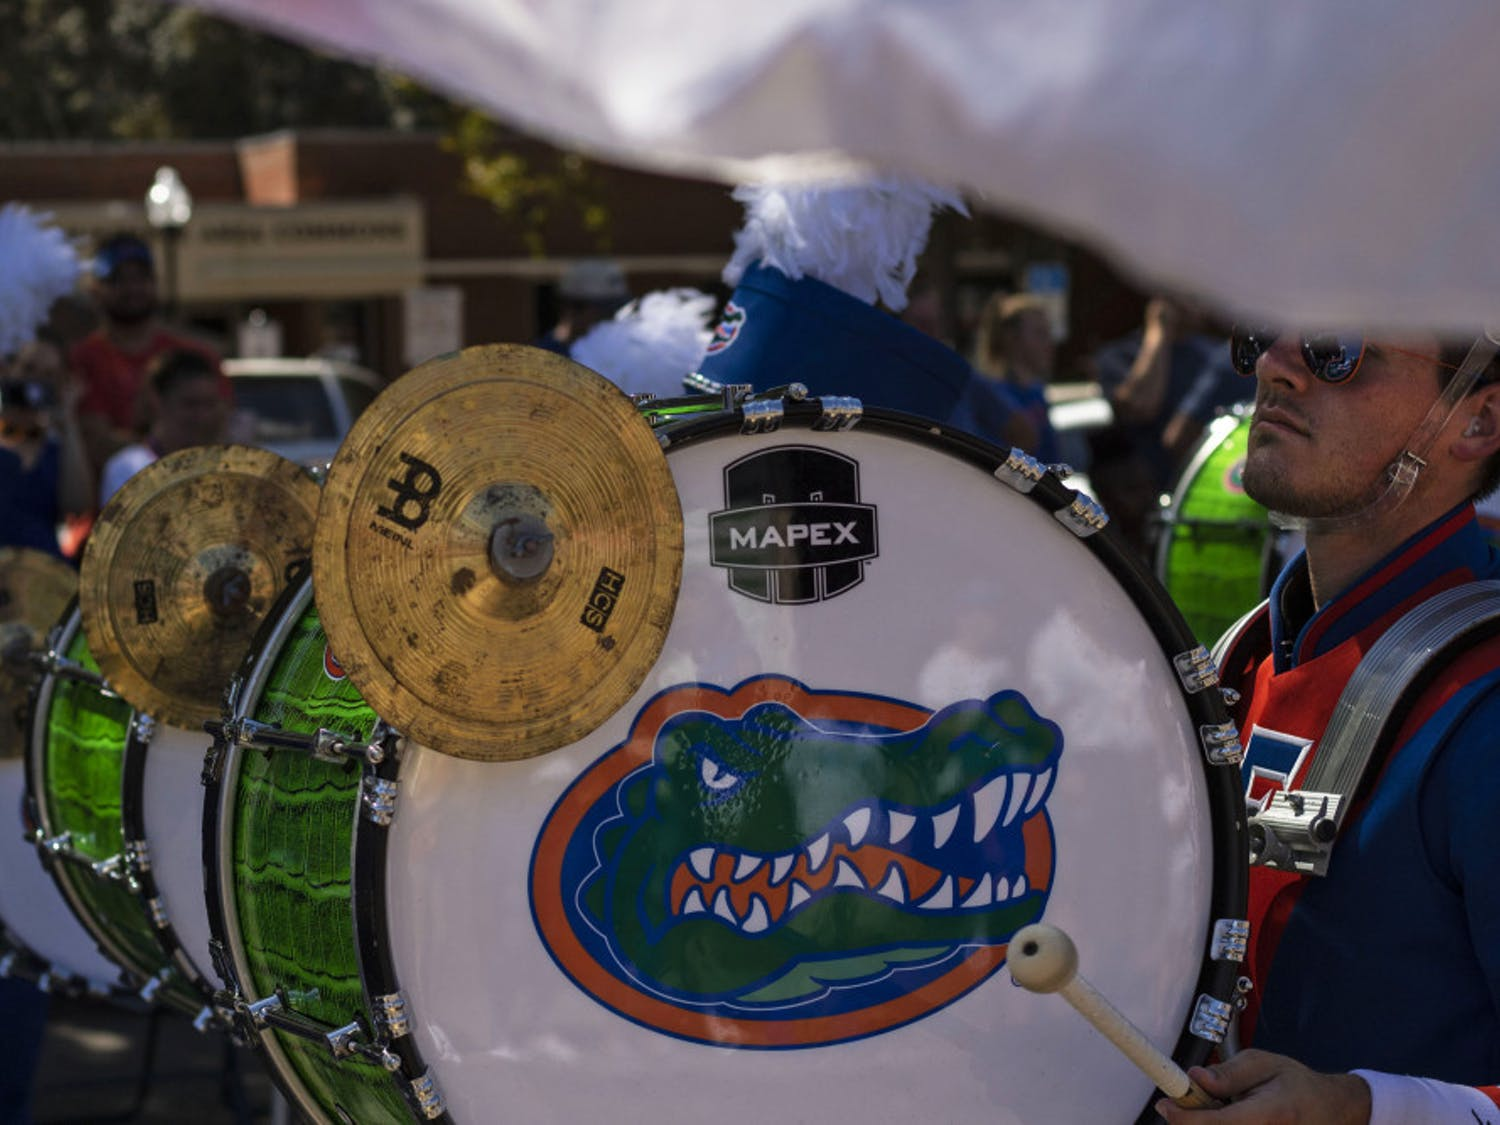 UF's annual homecoming was delayed until late December. It was originally scheduled in early October.